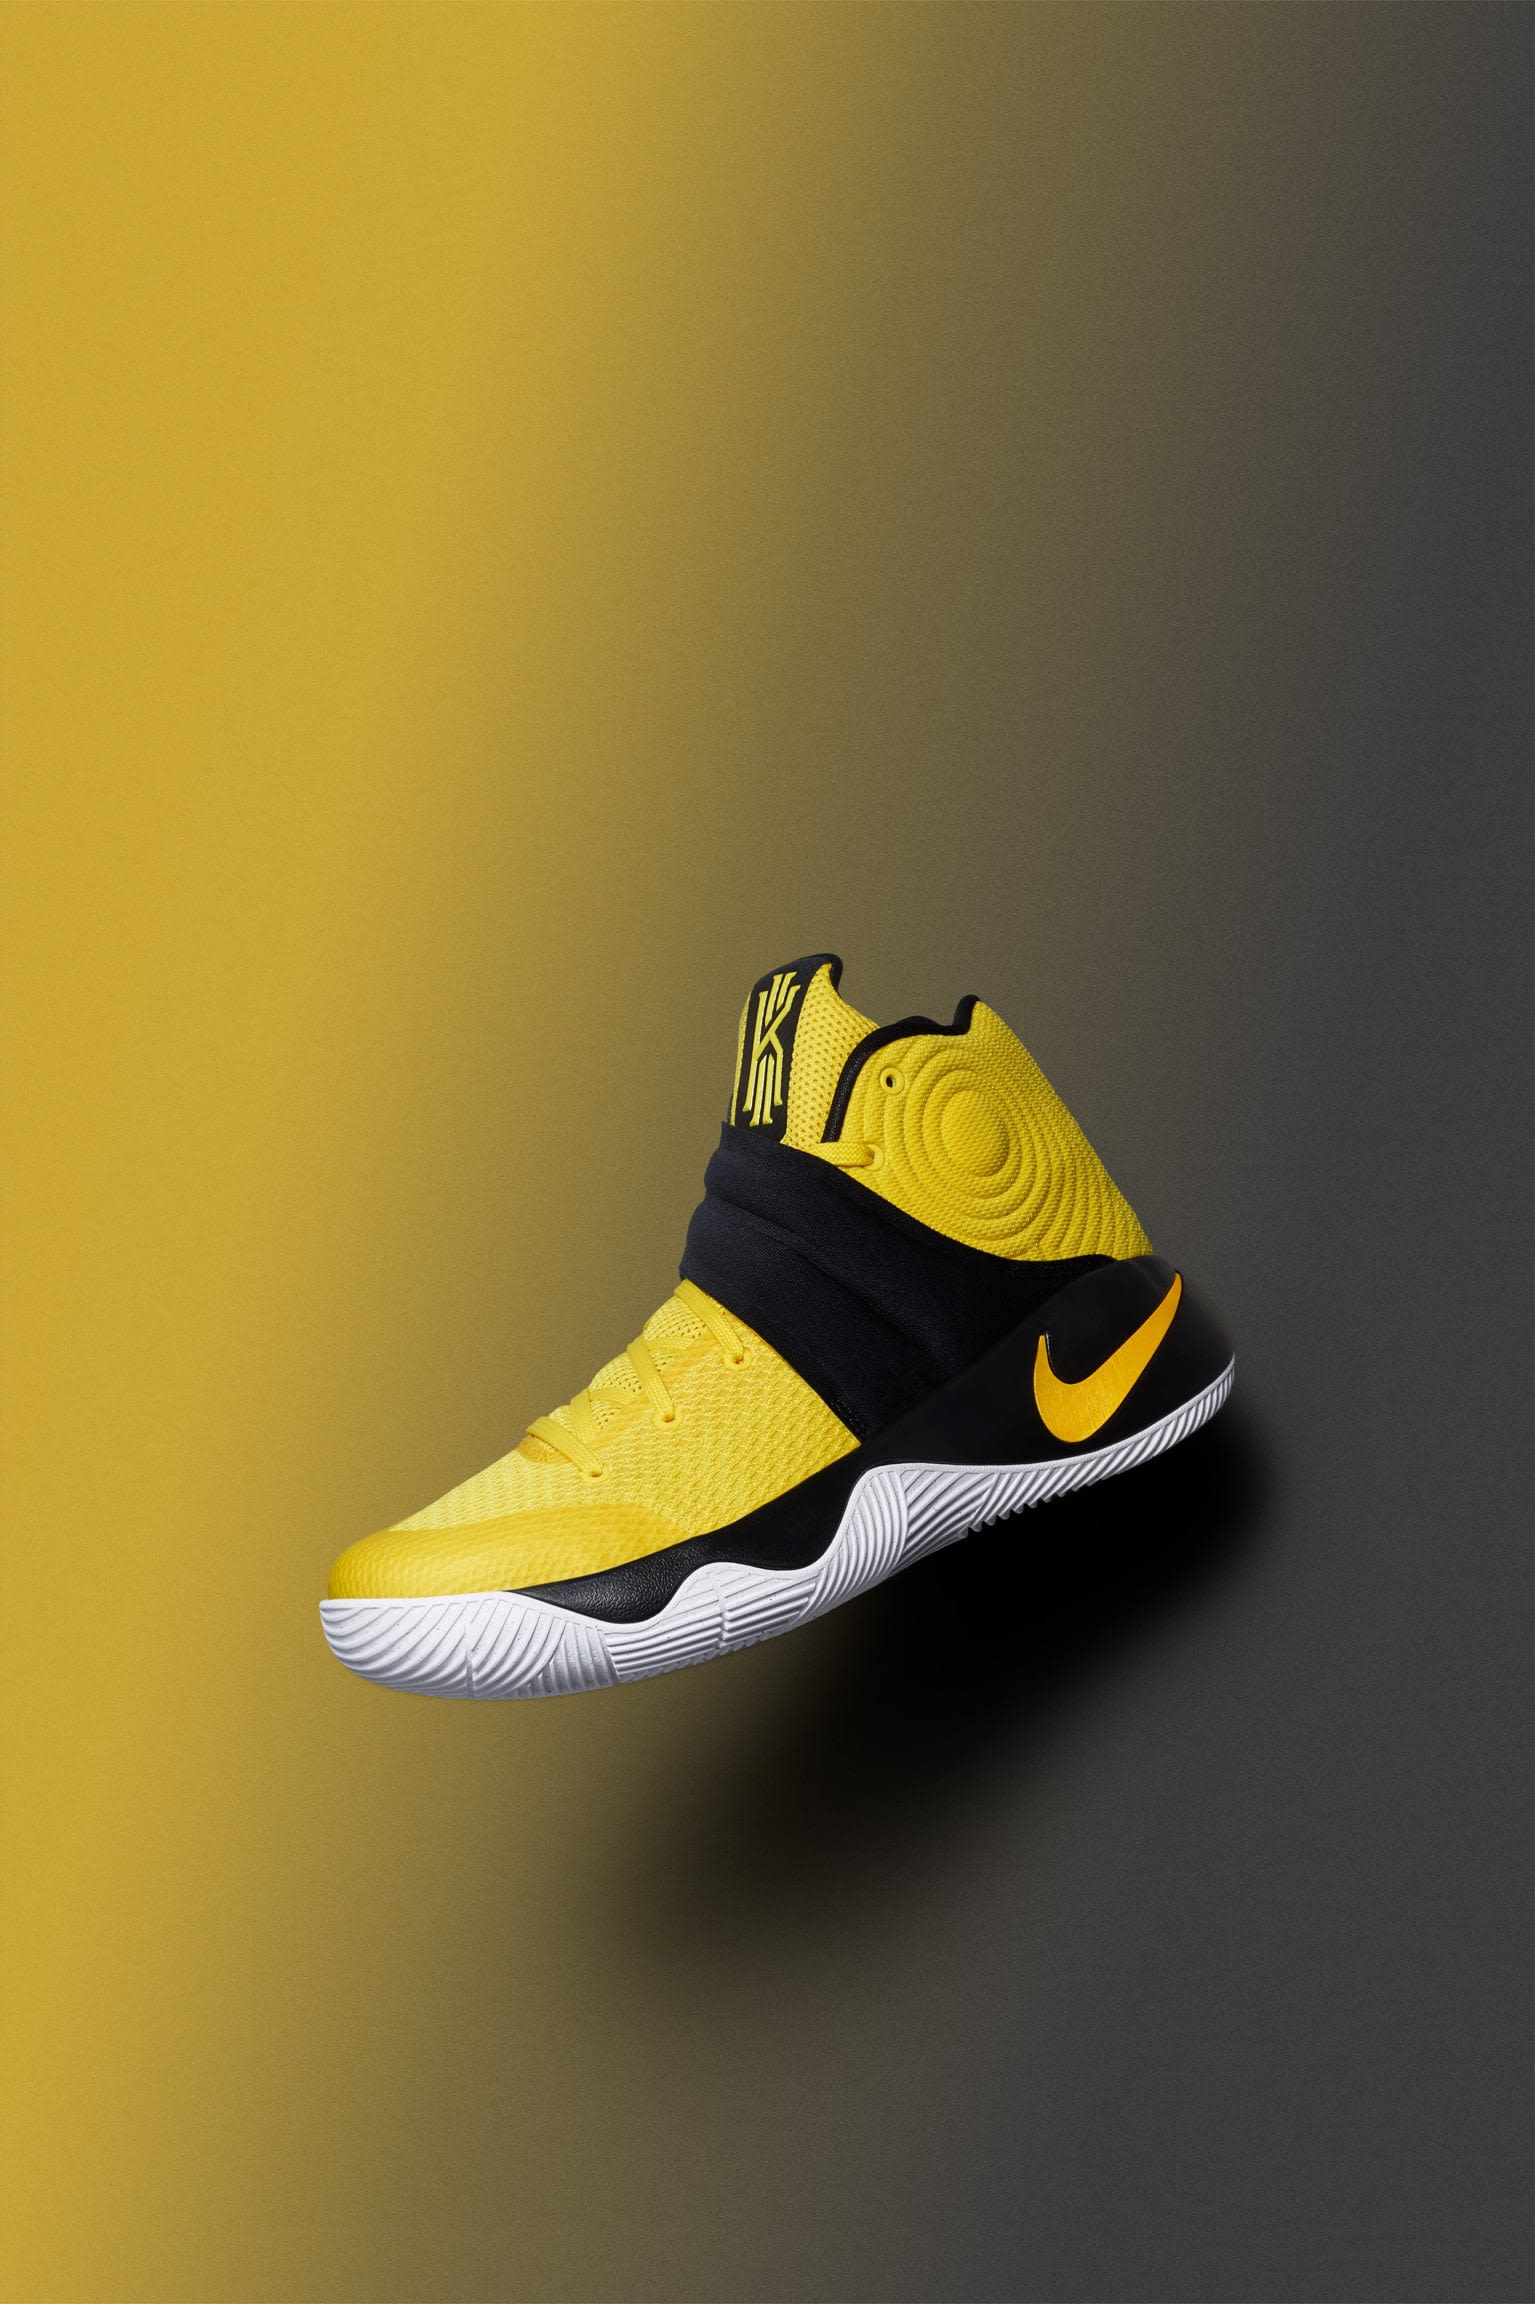 Nike Kyrie 2 'Tour Yellow' Release Date